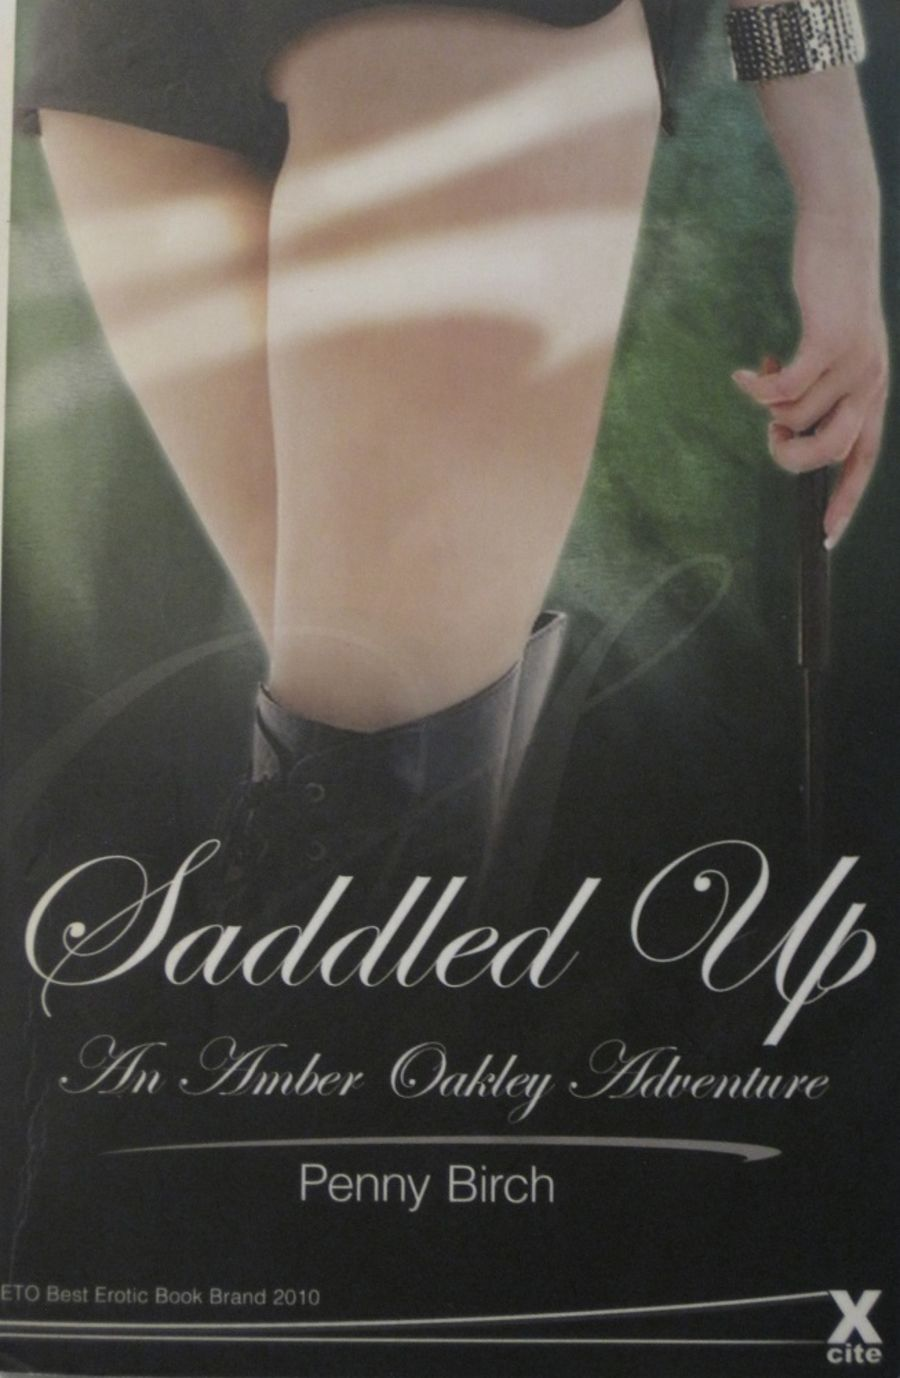 SADDLED UP.  2011 EROTIC FICTION PAPERBACK BOOK.